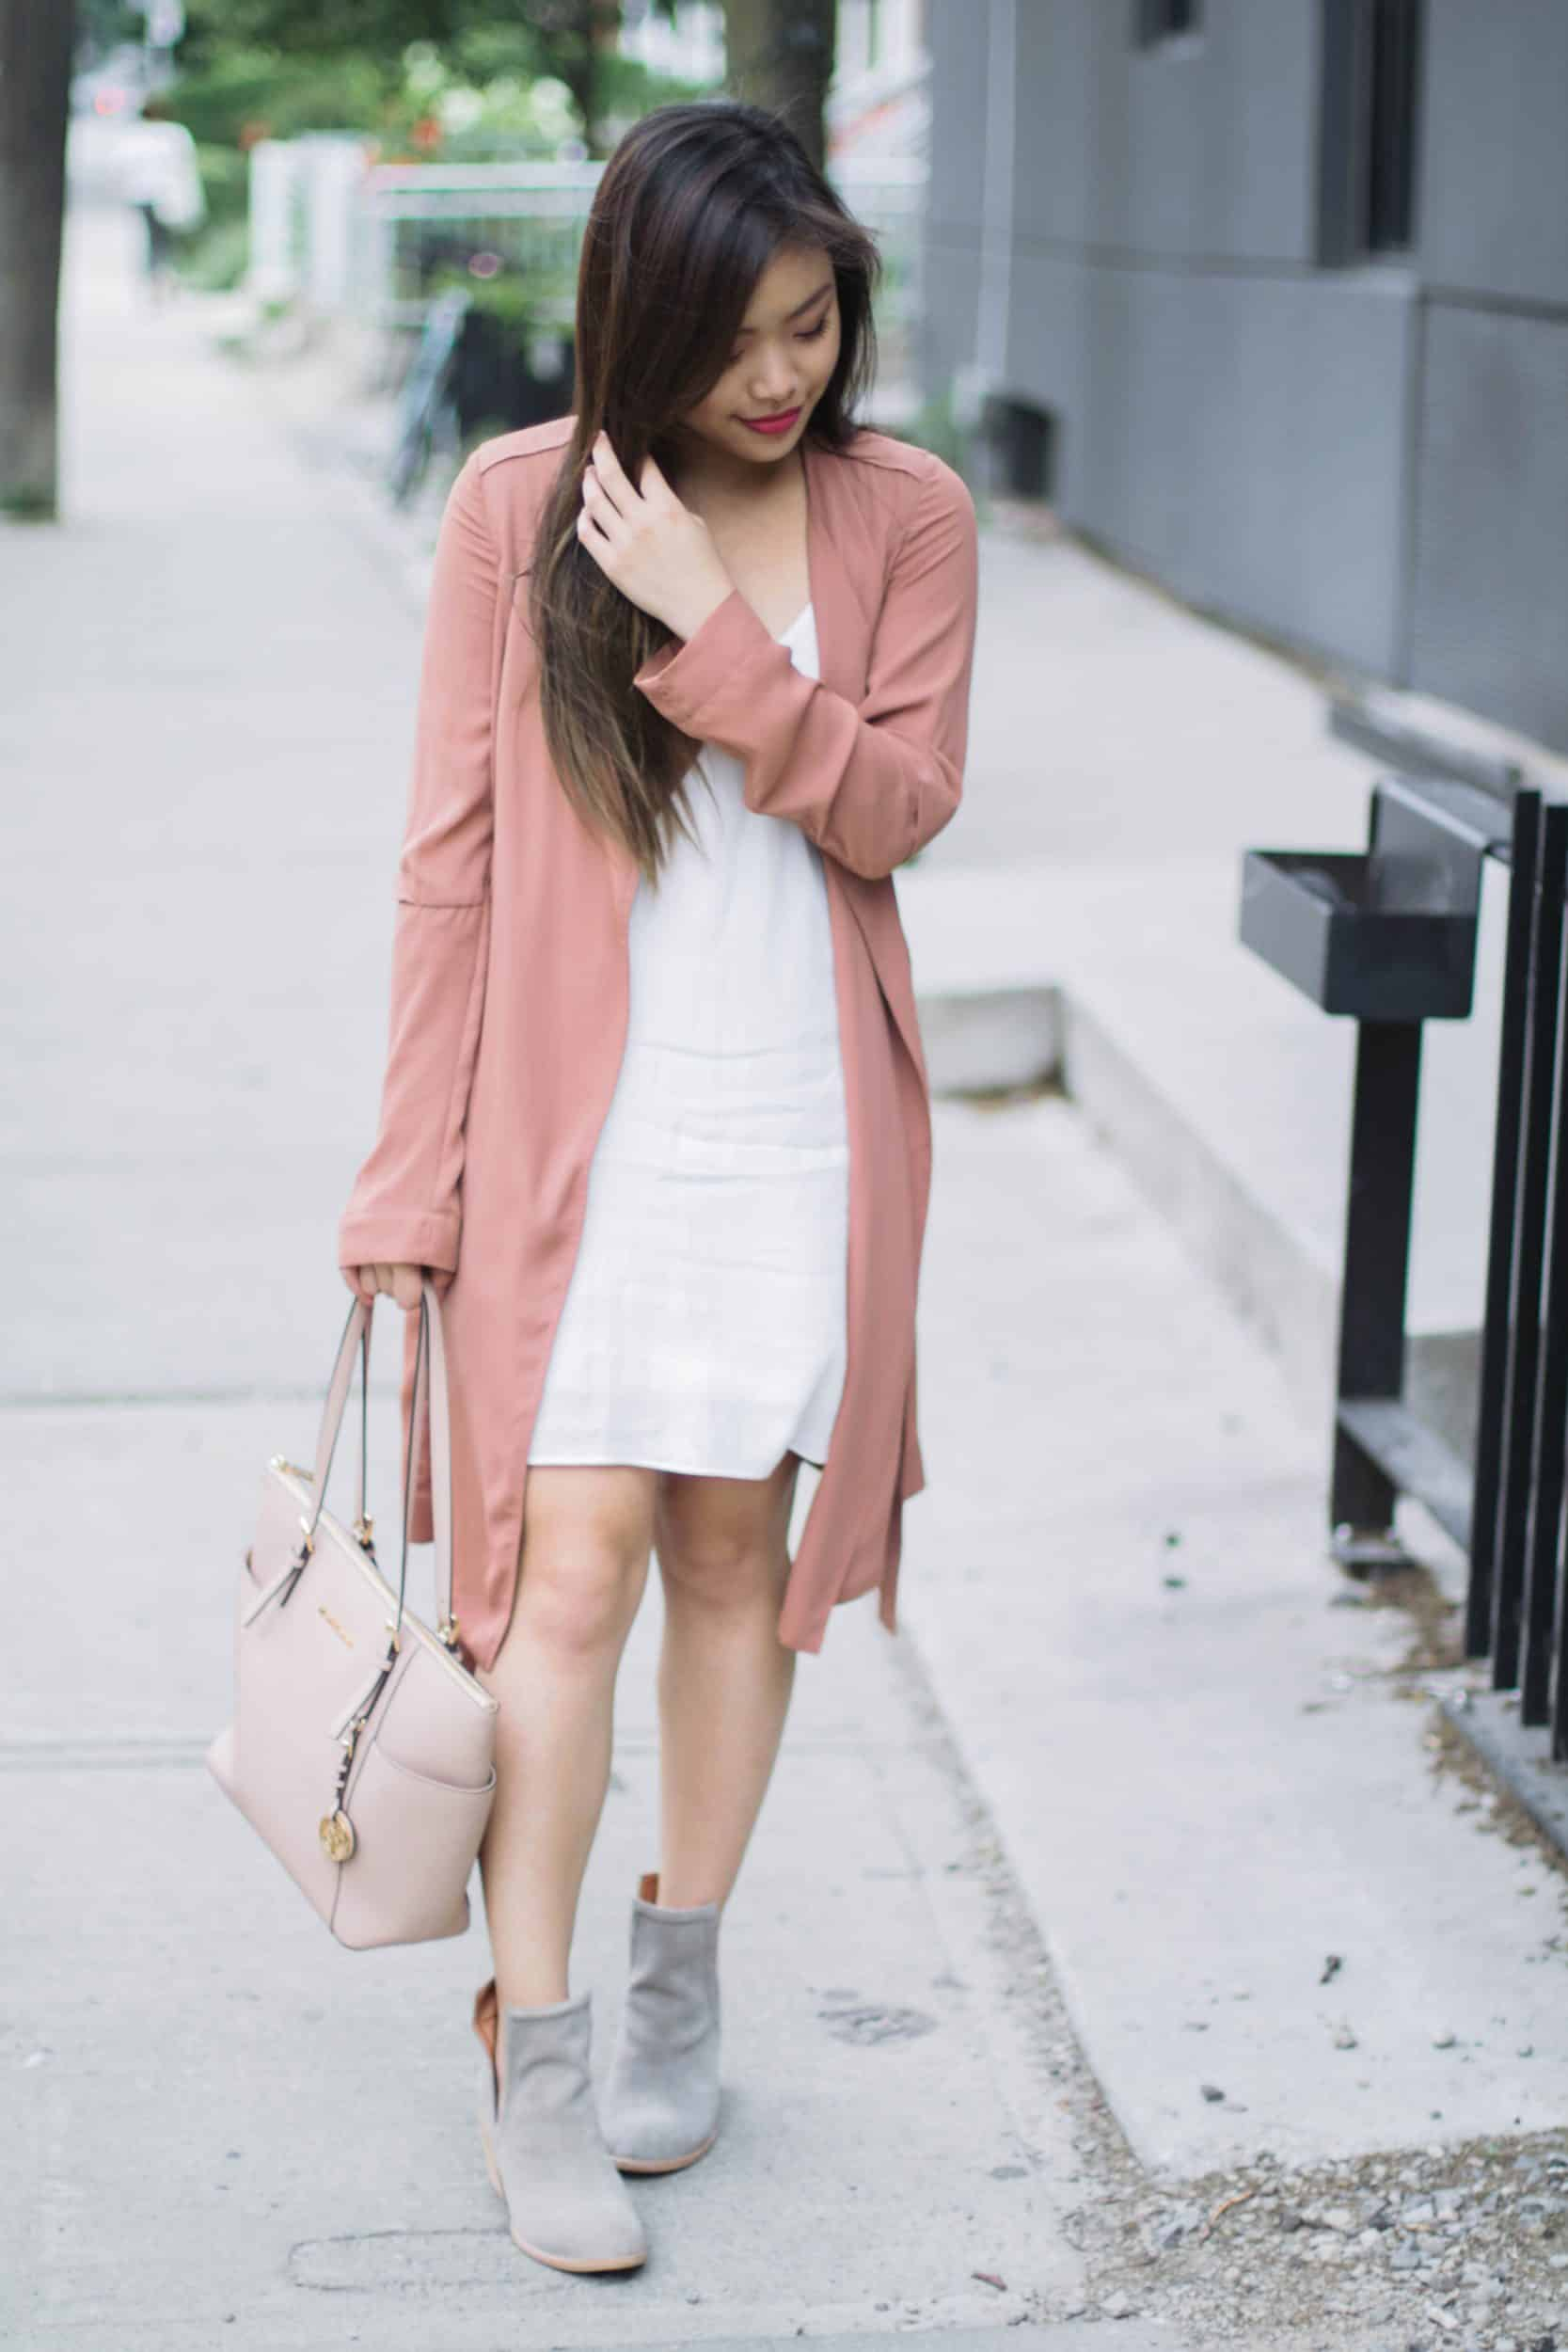 How to style a white slip dress | summer dress with millennial pink duster coat and taupe booties | spring and summer outfit ideas | end of summer outfit inspiration | Diary of a Toronto Girl, a Canadian lifestyle blog